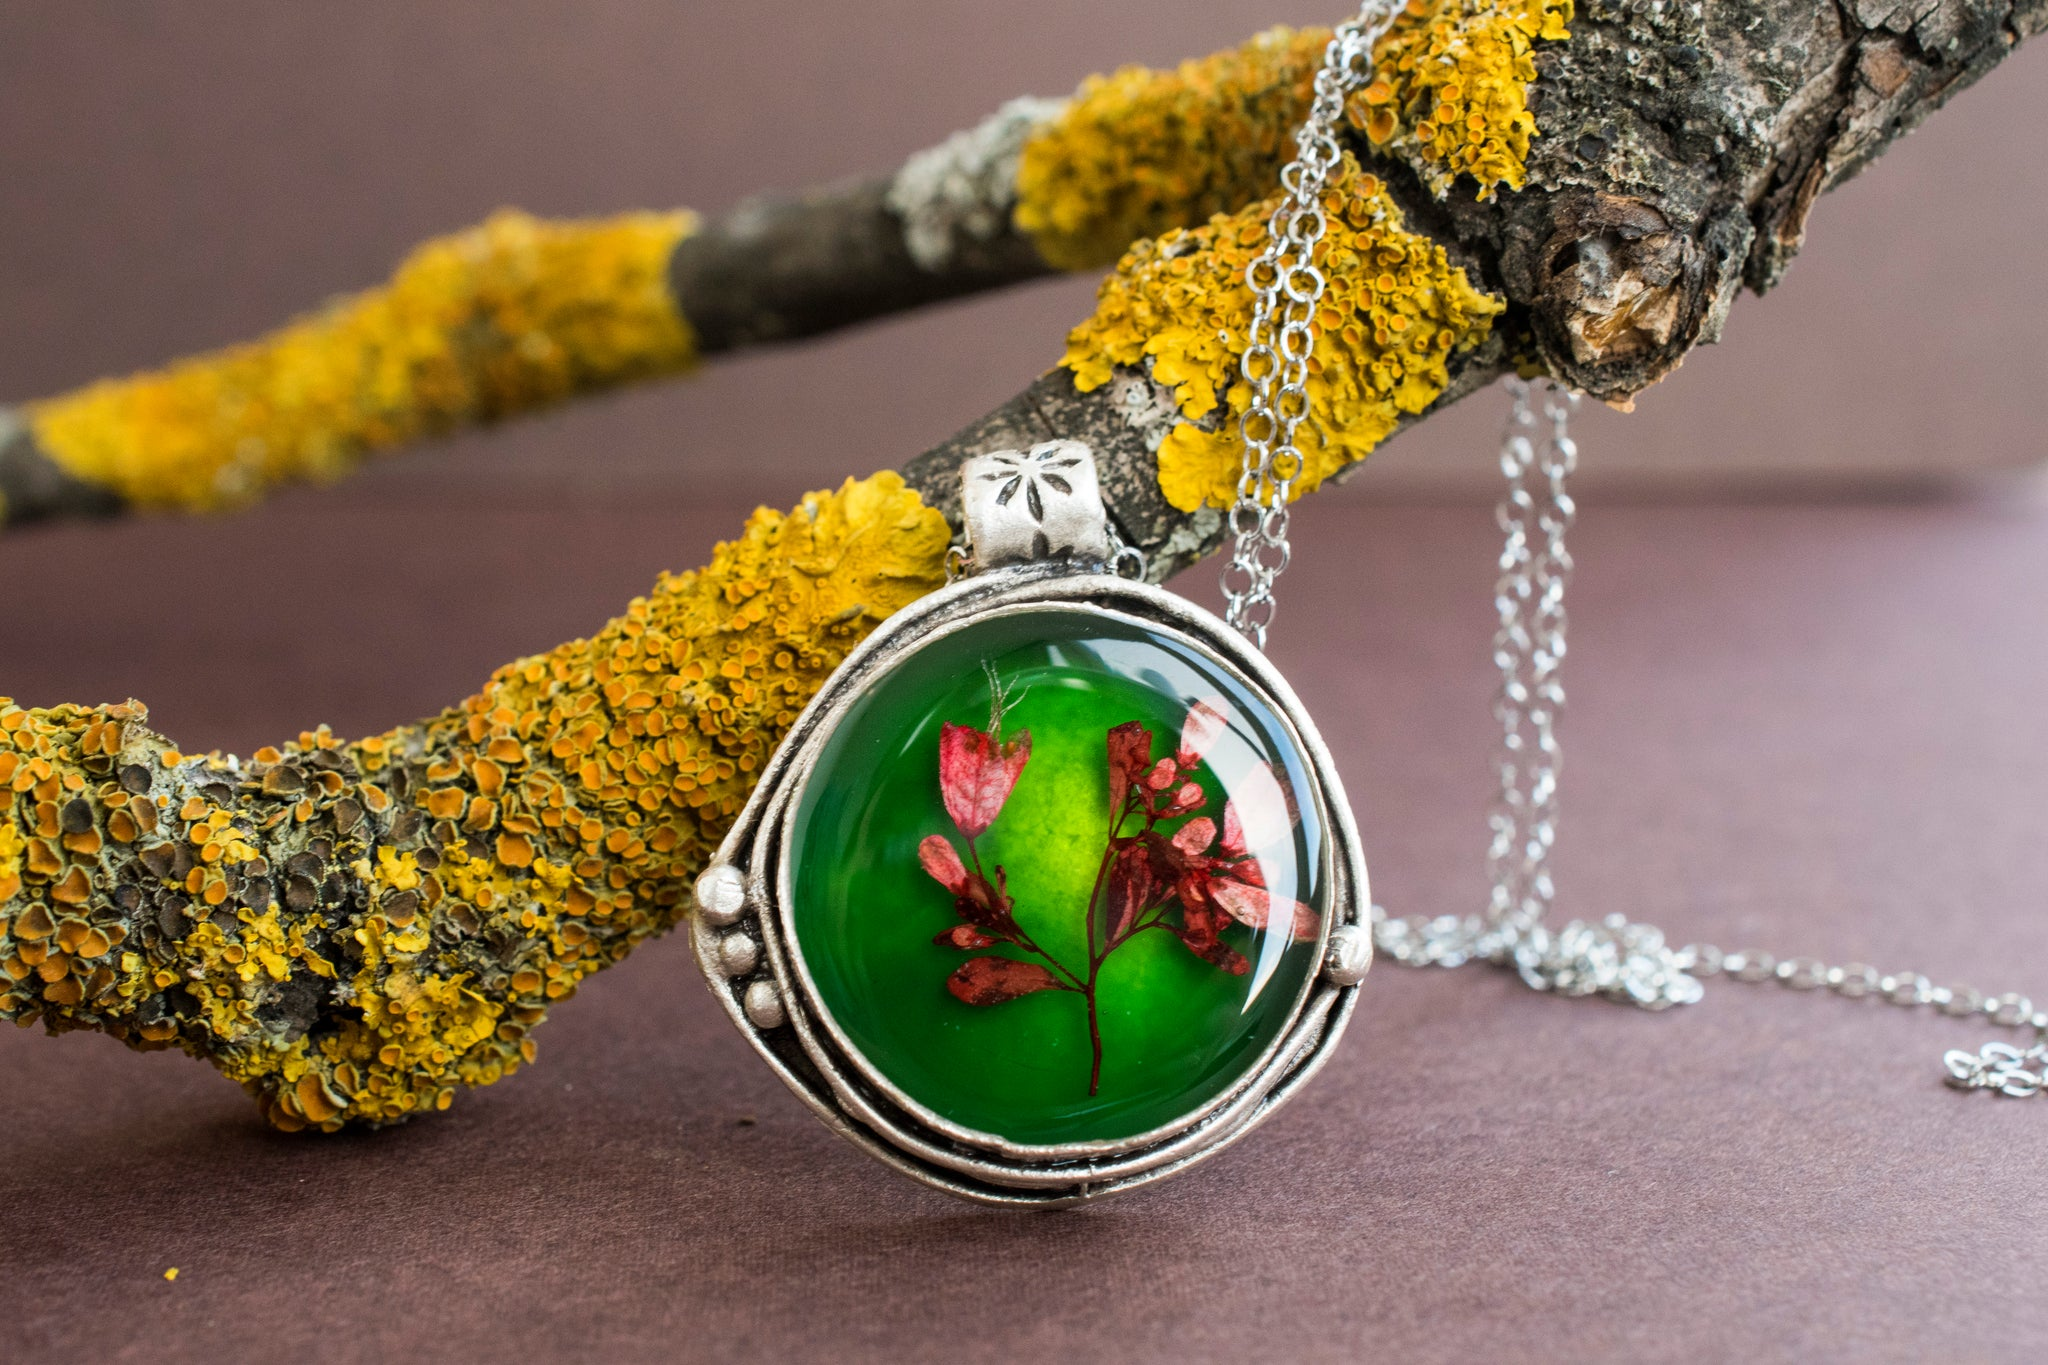 Green resin necklace with red flowers